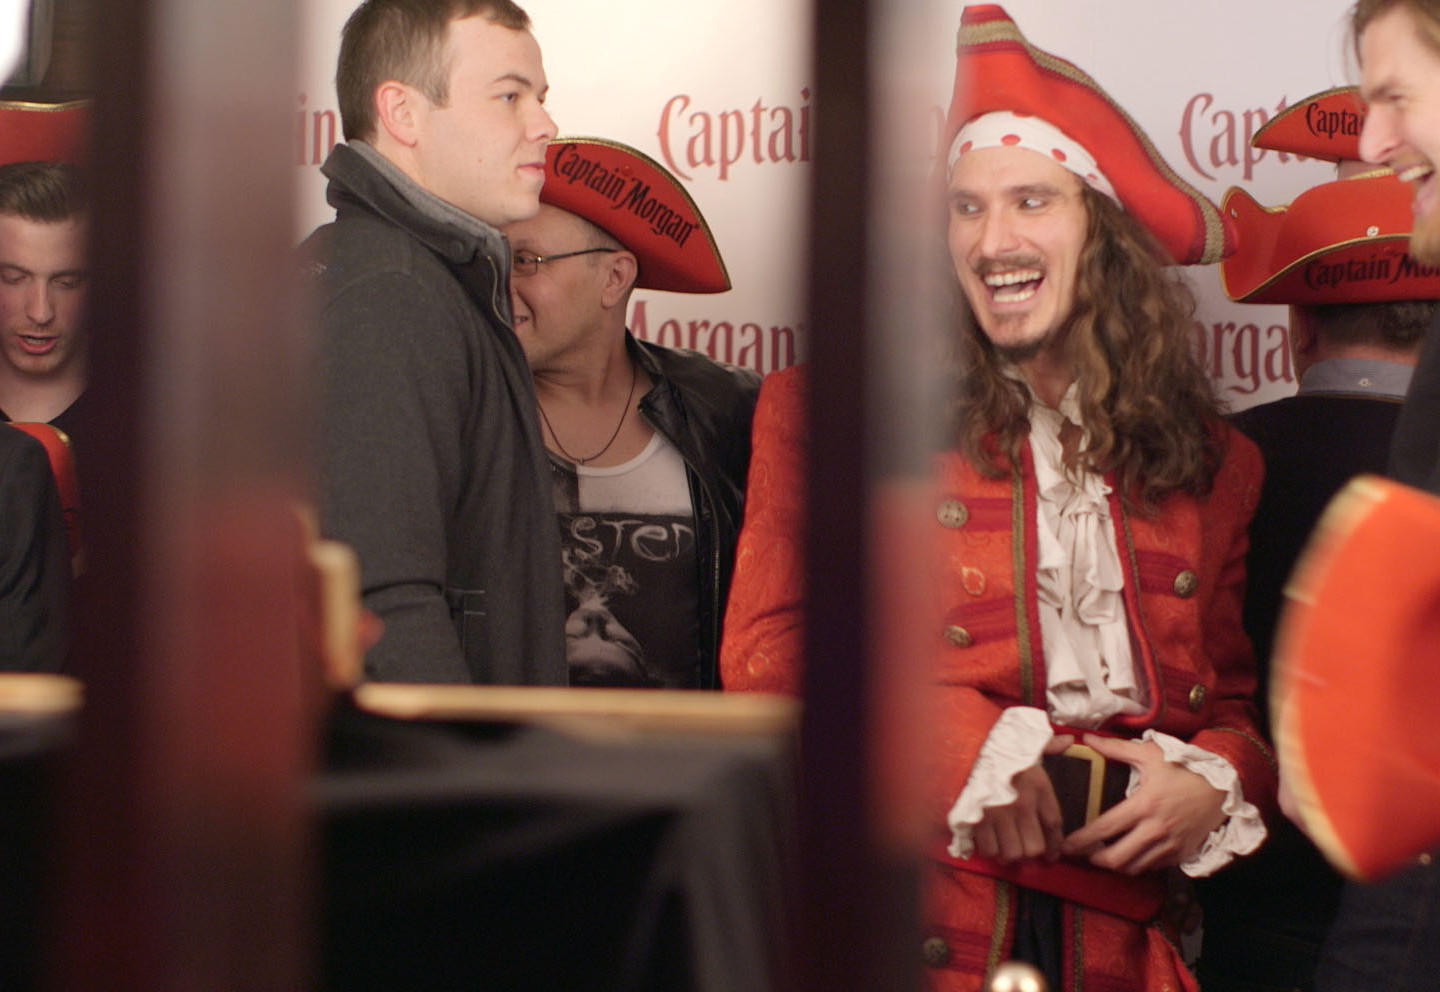 Clear Channel Captain Morgan Event Screenshot.jpg